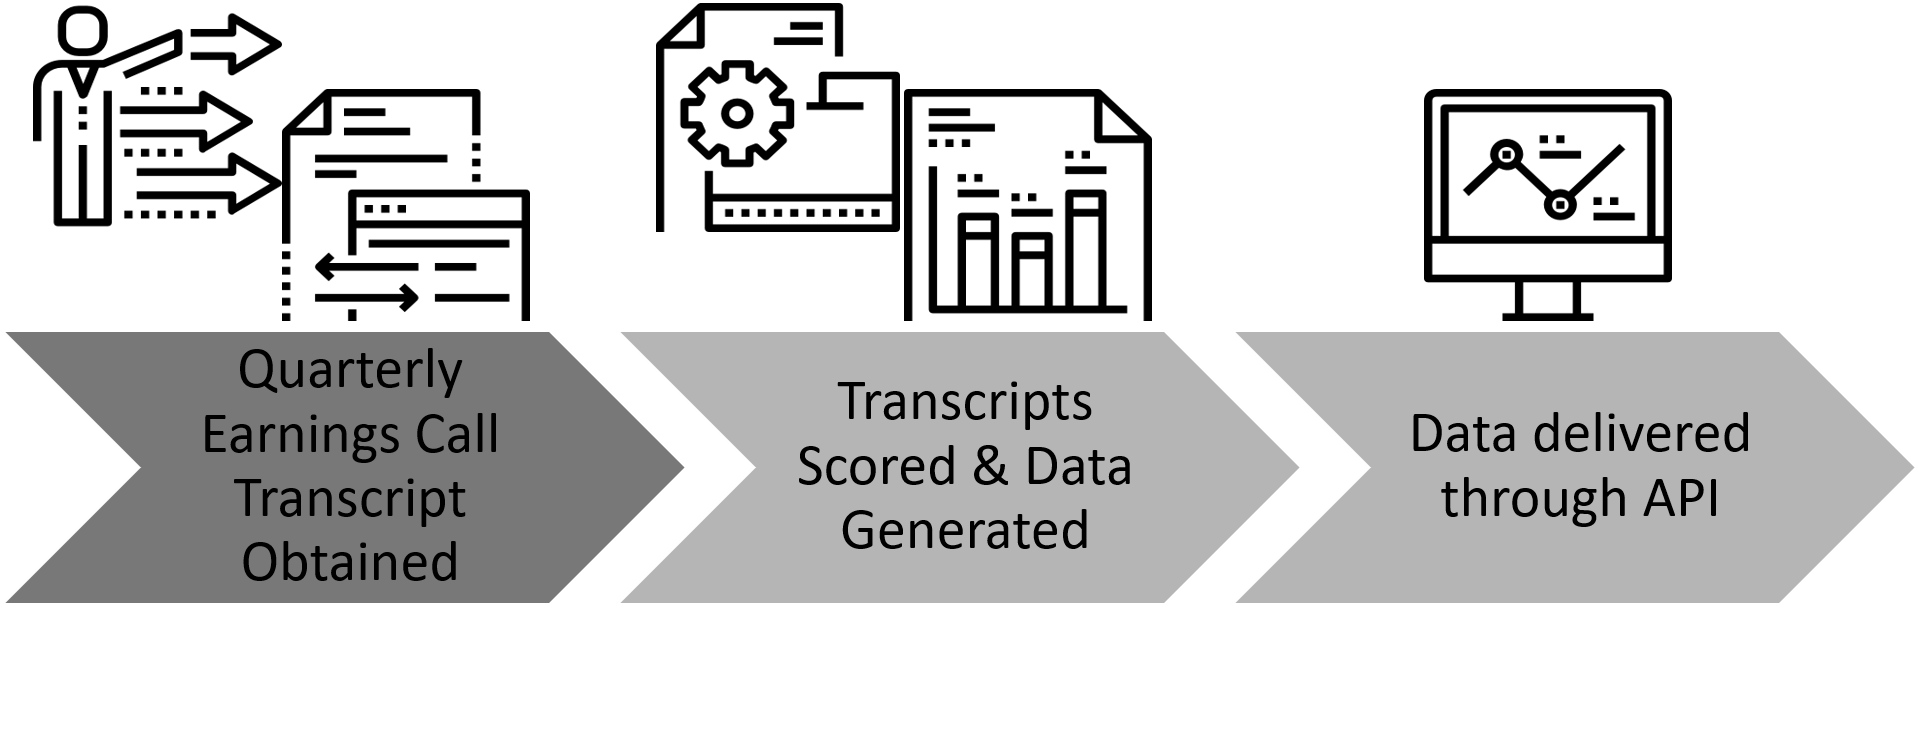 Earnings Calls transcripts are cleaned, scored, and metrics are delivered via API